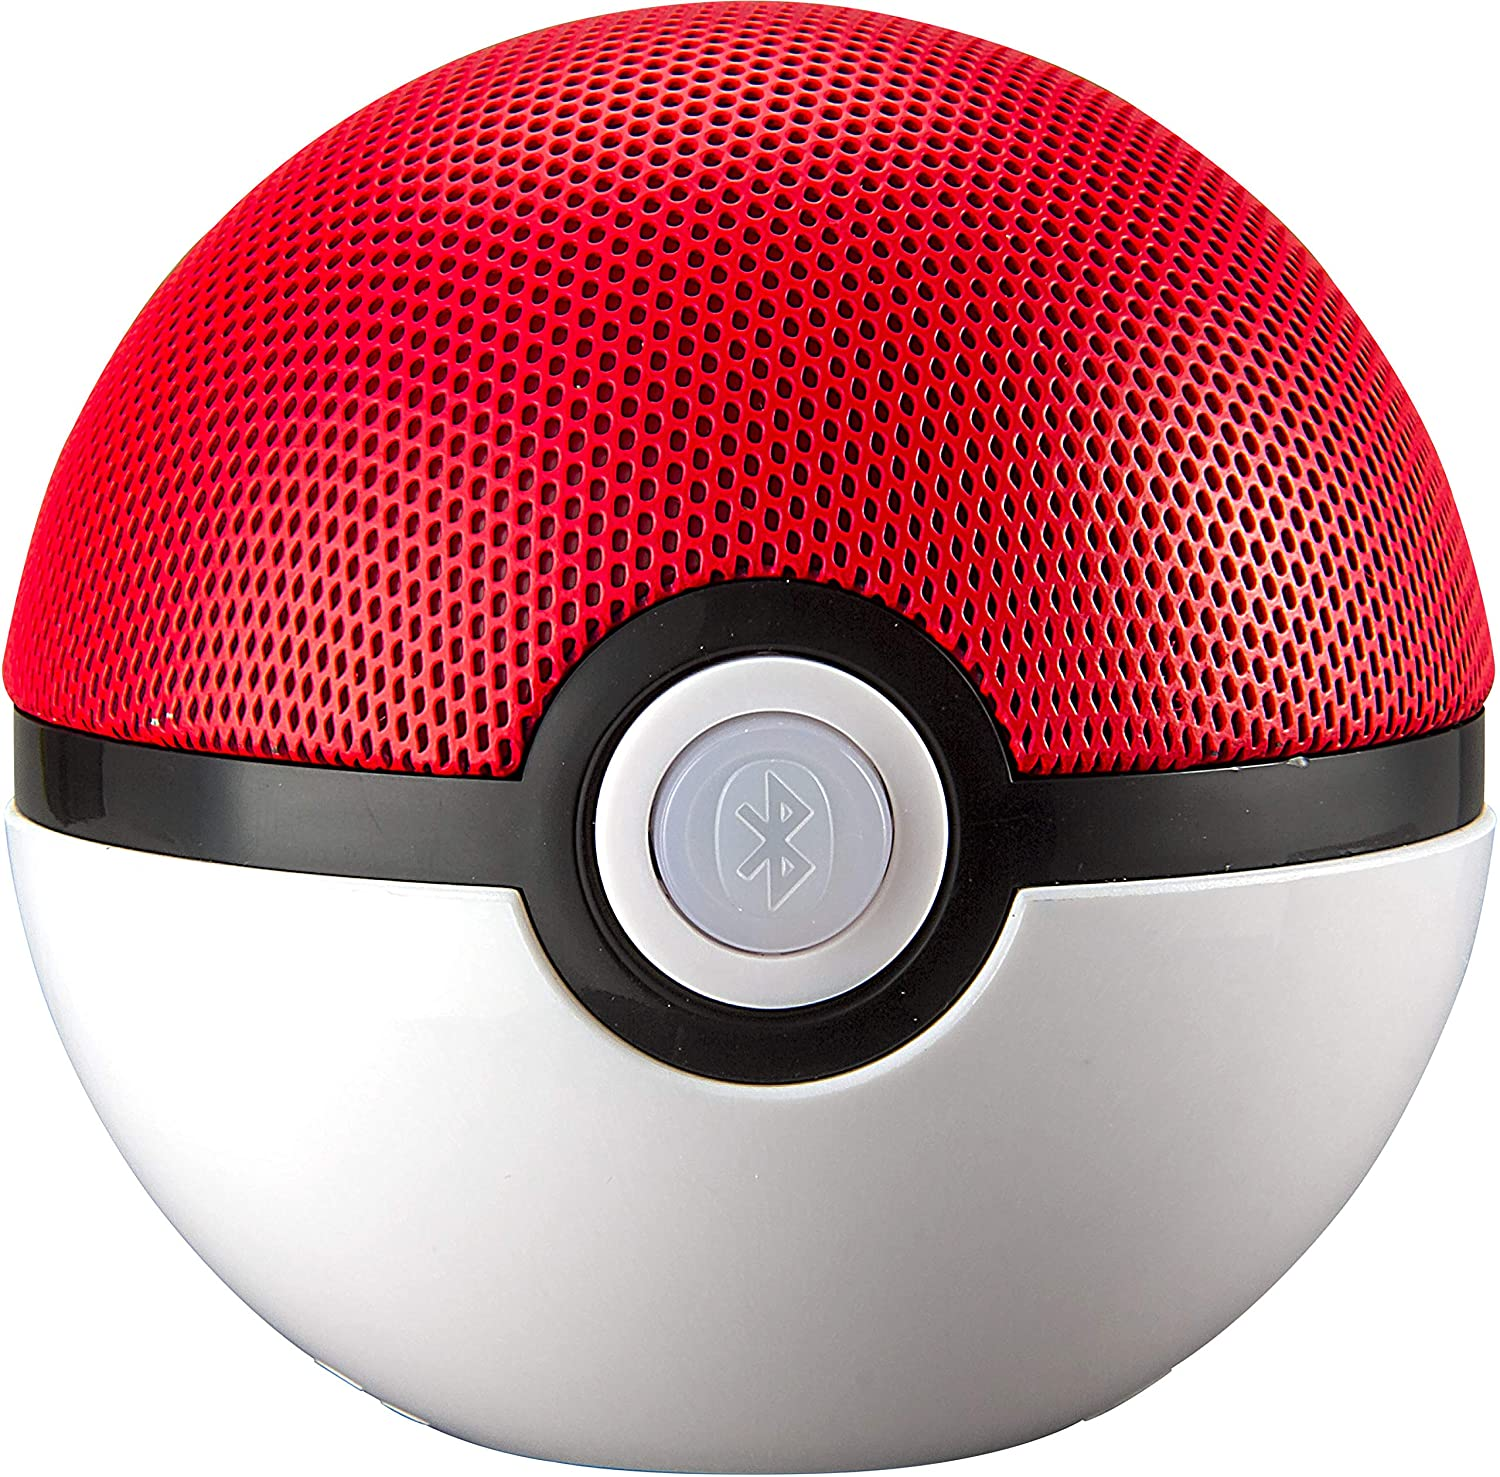 pokemon-gifts-bluetooth-speaker